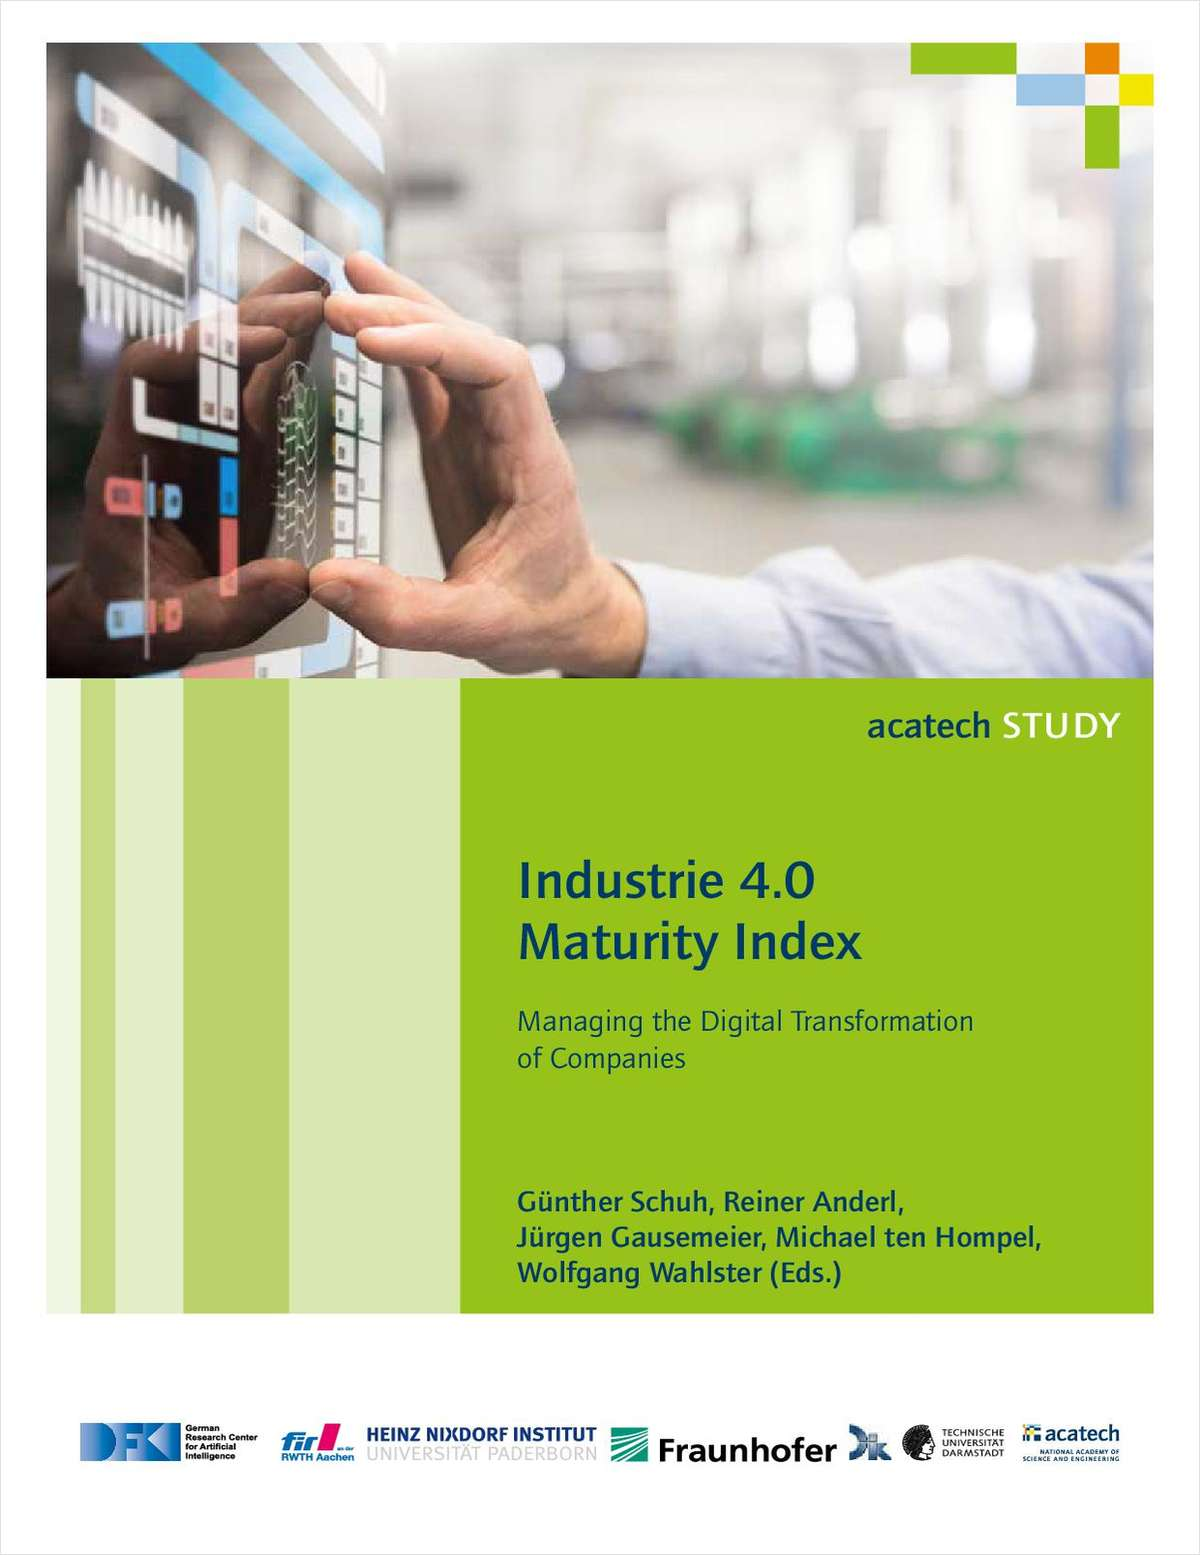 Acatech Maturity Model Index